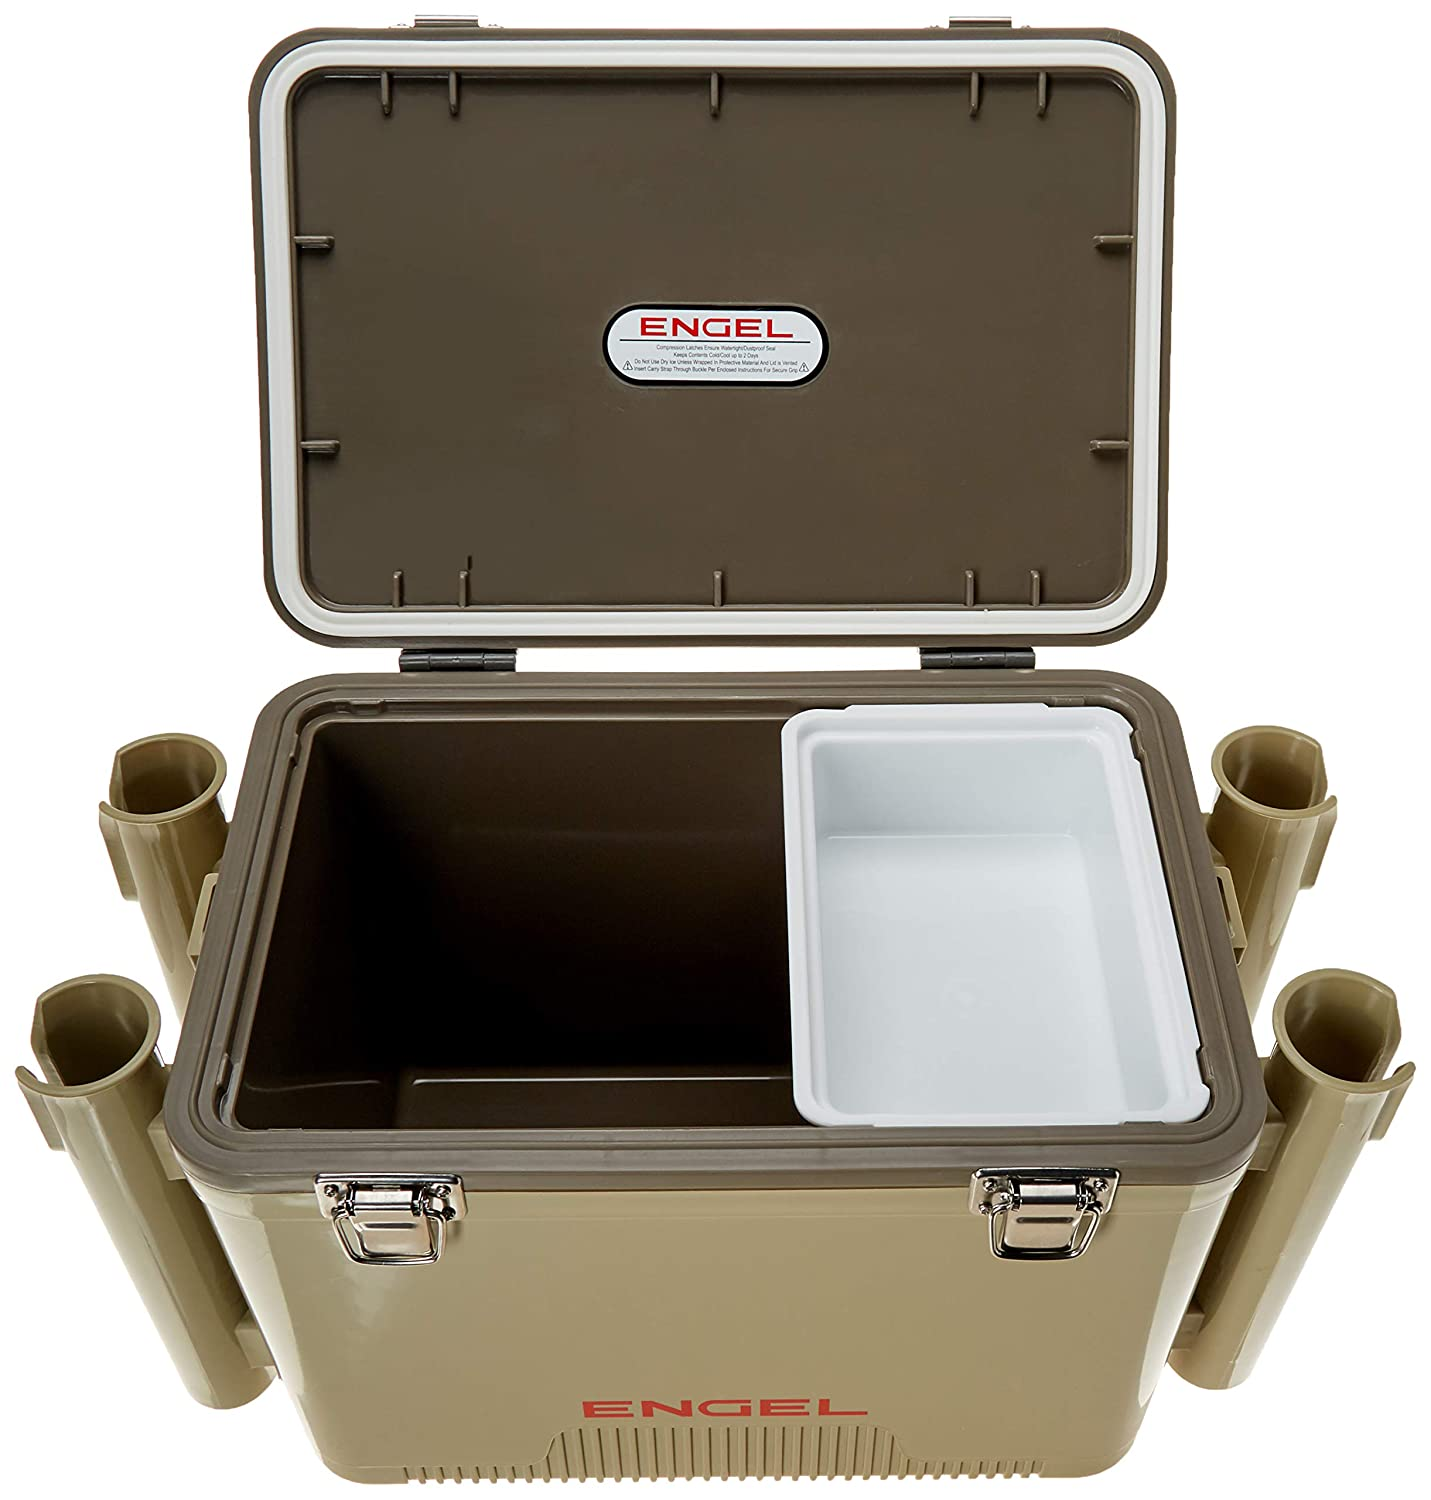 ENGEL COOLERS 19 QUART COOLER/DRY BOX - TAN W 4 ROD HOLDERS by ...